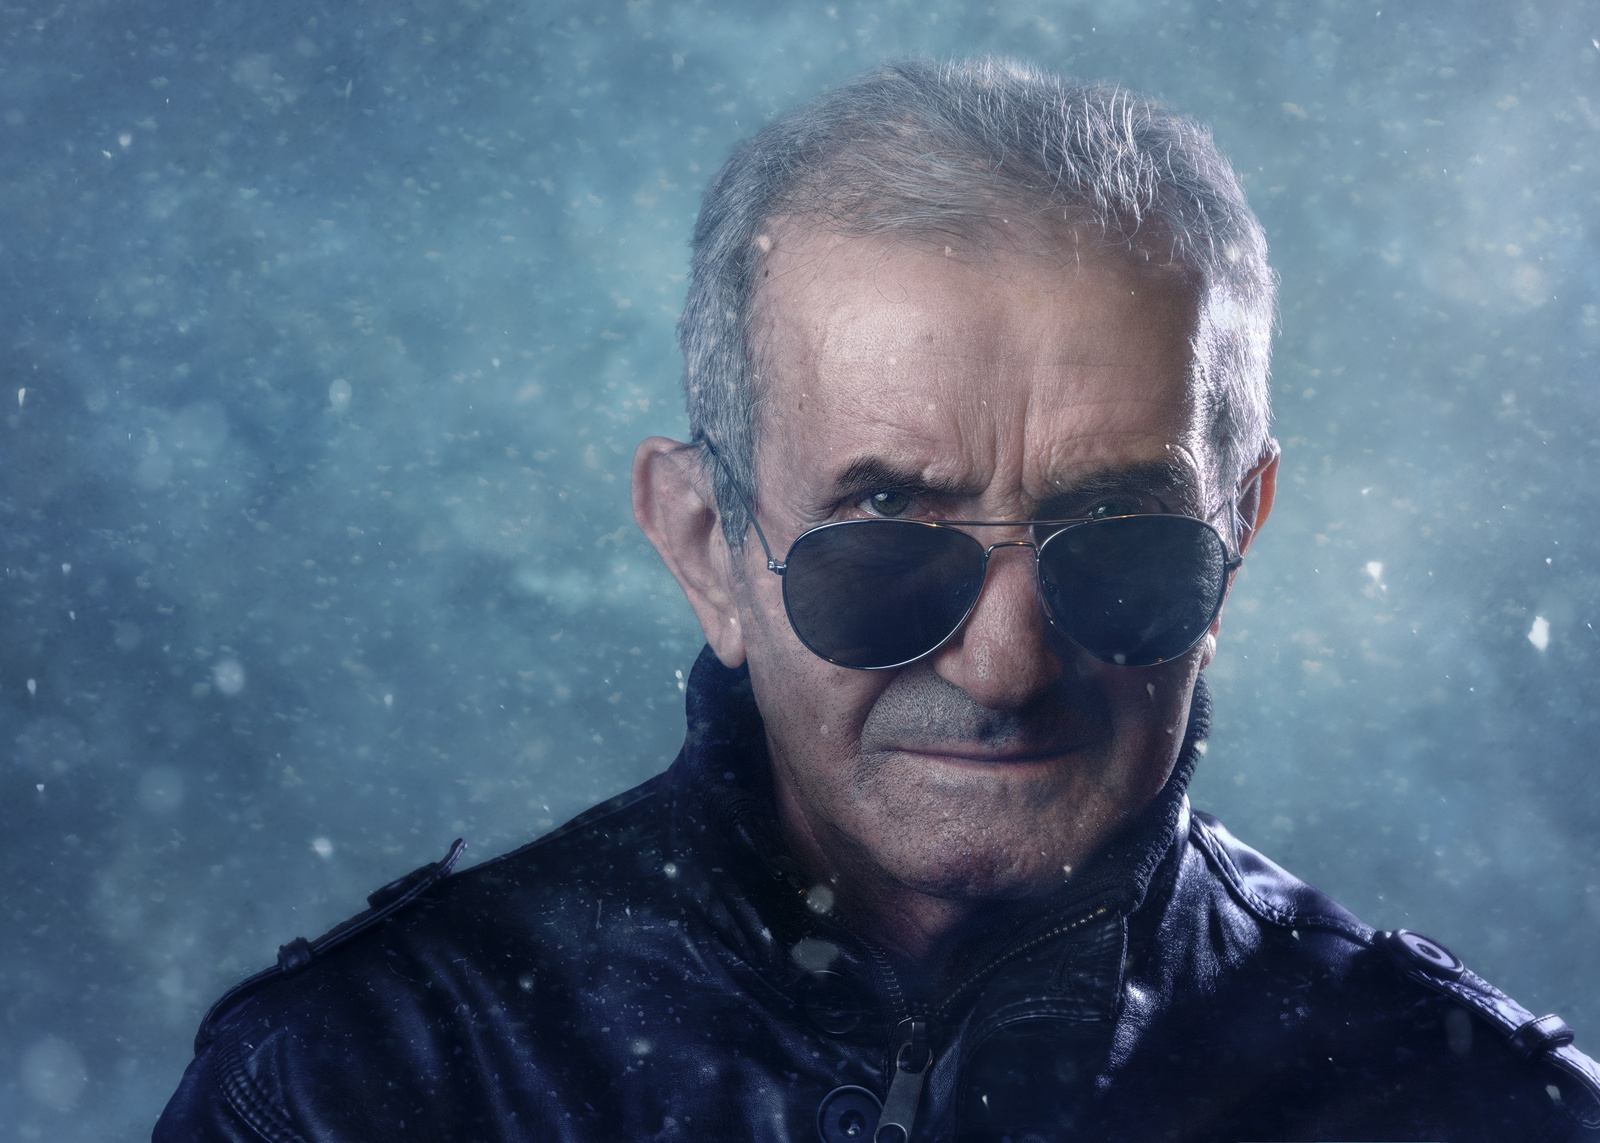 Photog Shoots a Badass Viral Portrait of His Badass Grandpa